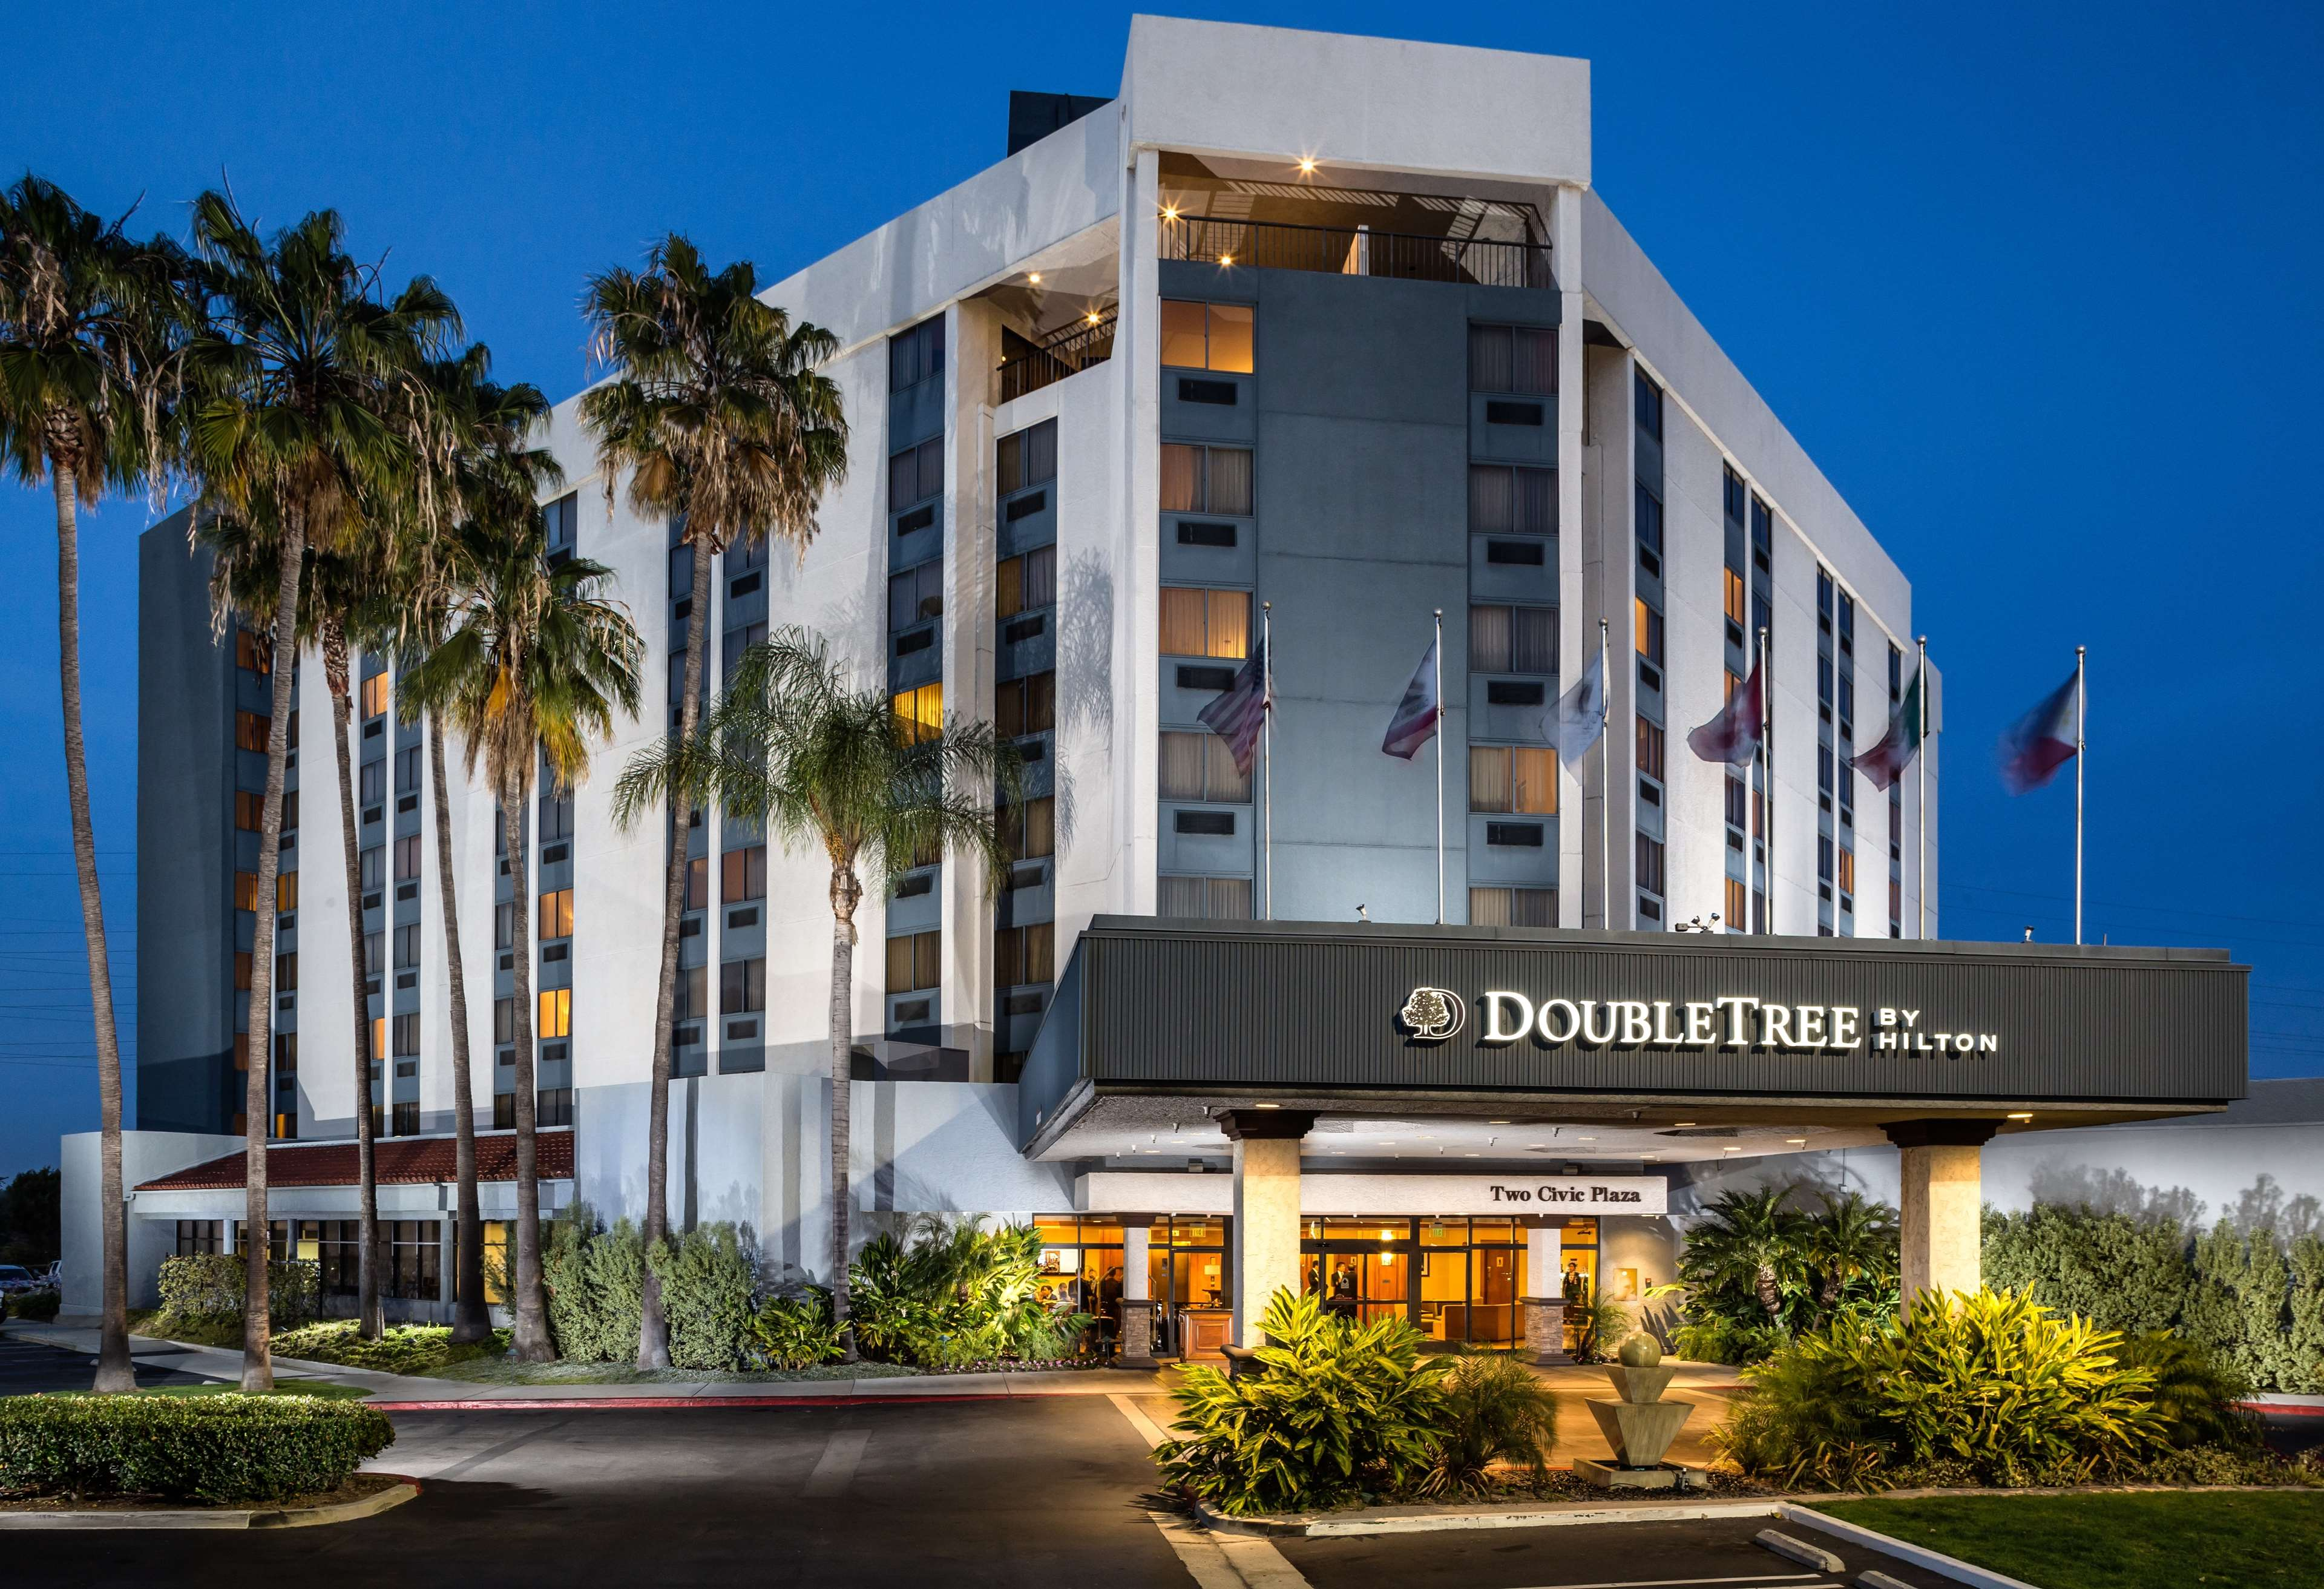 doubletree by hilton hotel carson carson california ca. Black Bedroom Furniture Sets. Home Design Ideas